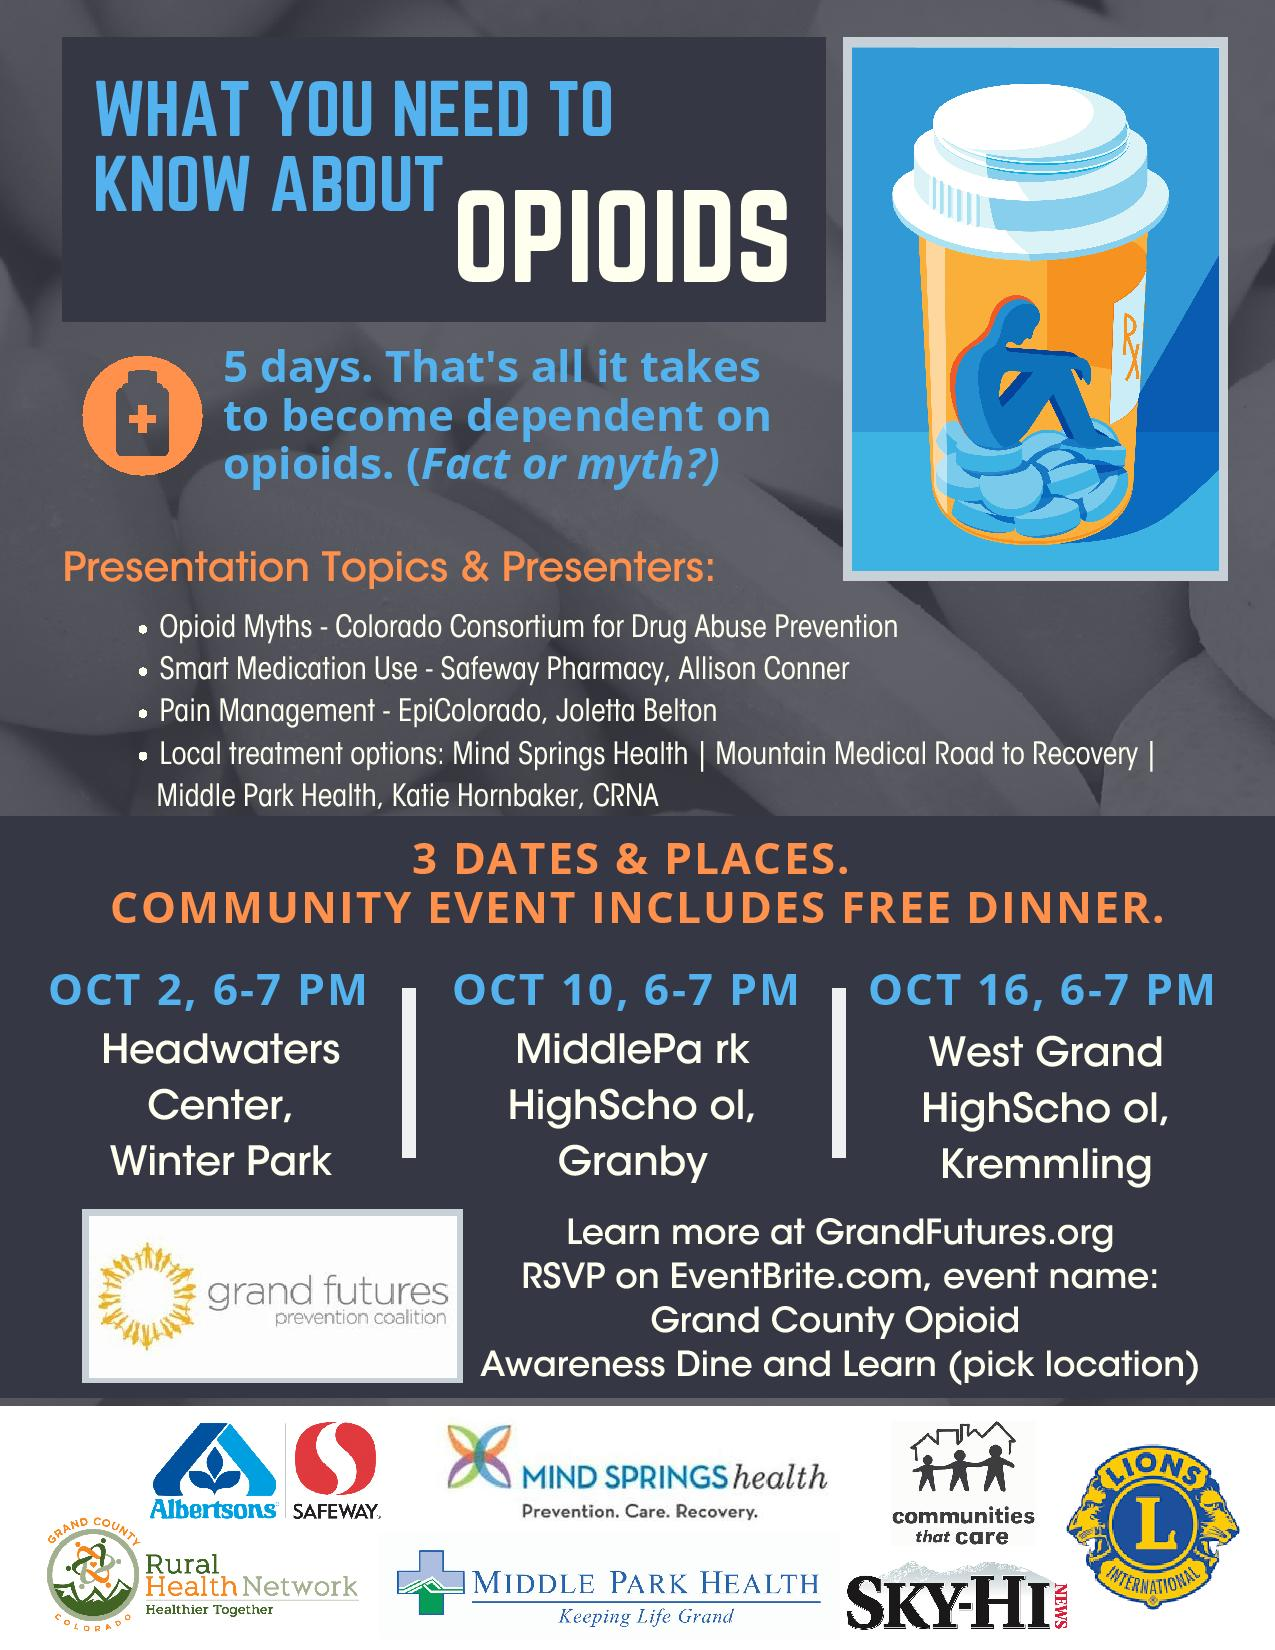 What You Need to Know About Opioids Presentation